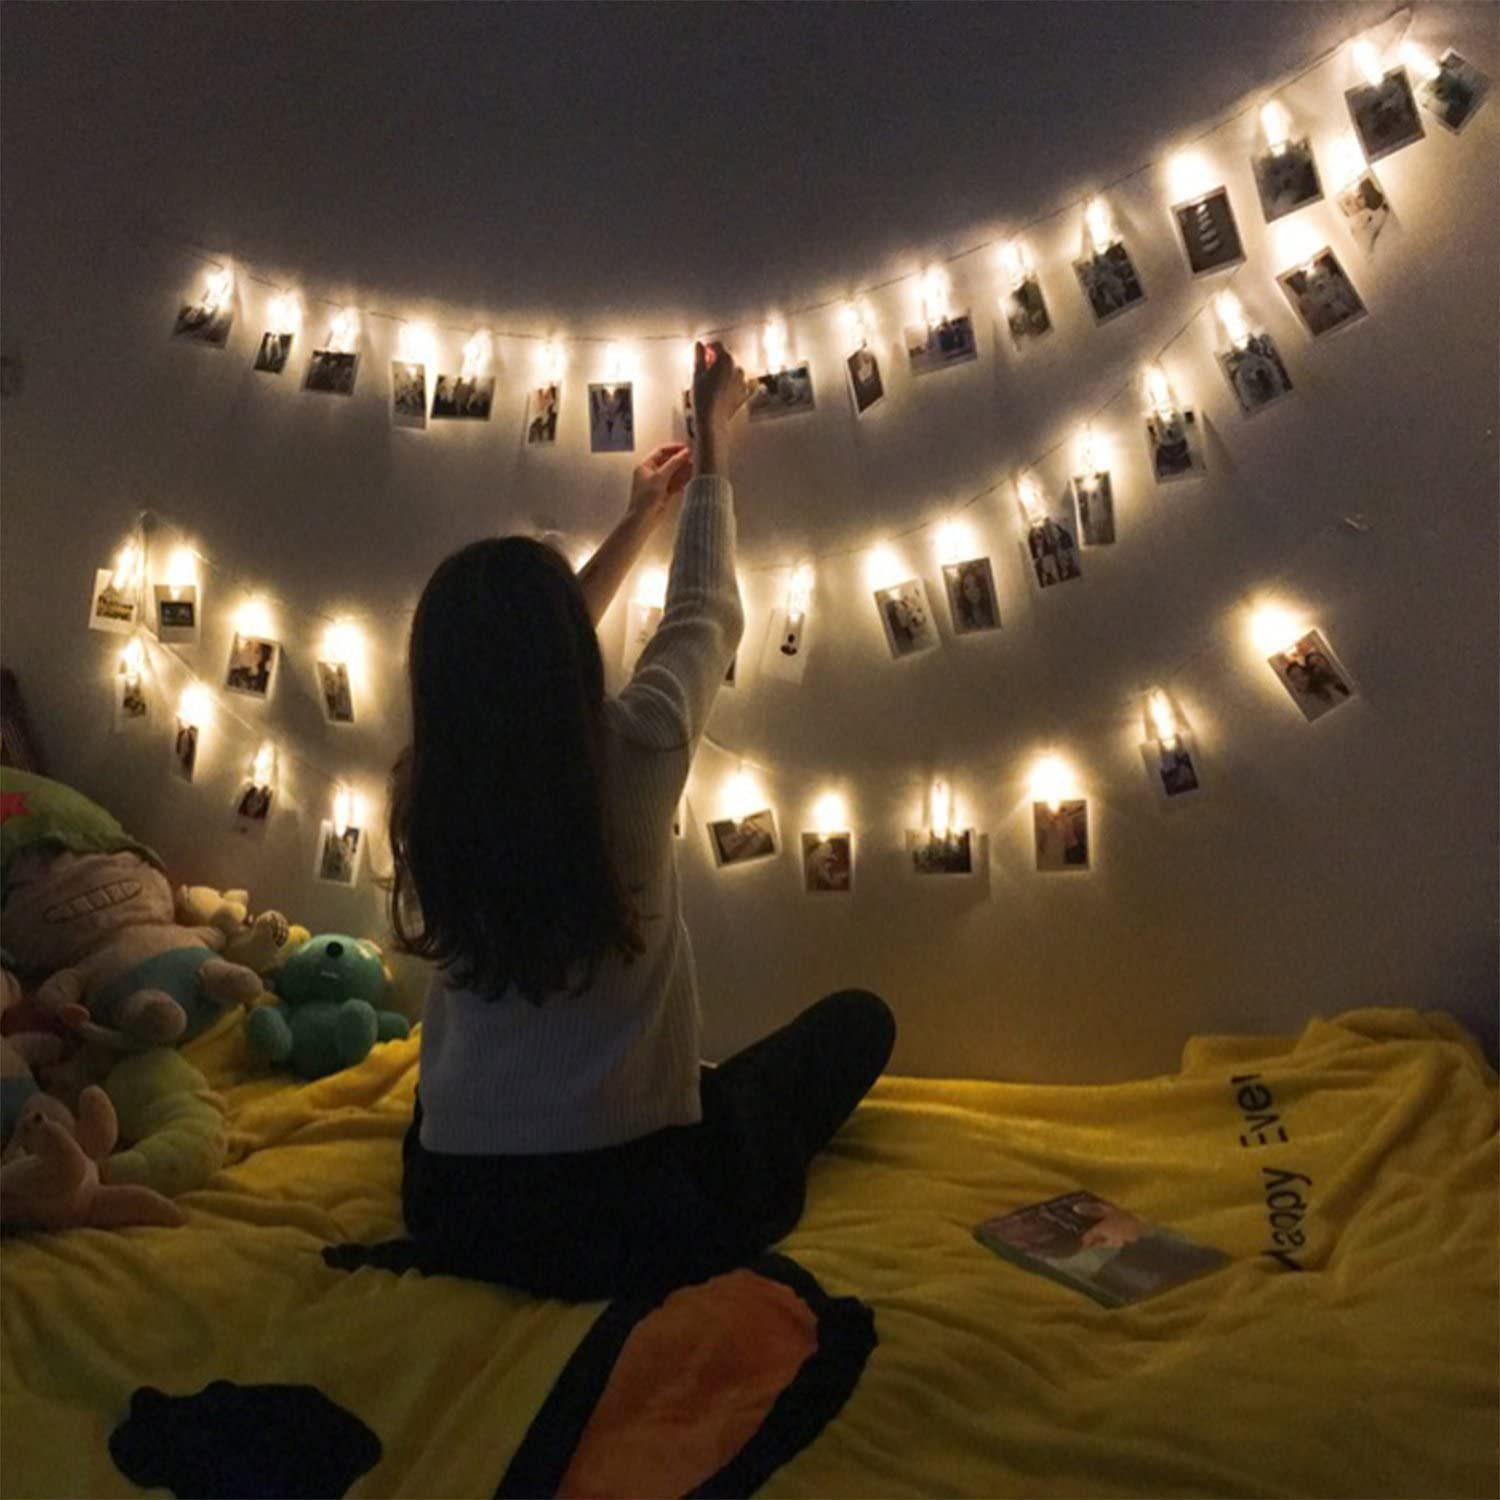 BIWOWE Photo Clips String Lights Battery & USB Powered 8 Modes Picture Hanging Lights 40 LED Photo String Lights with Clips-Perfect Dorm Bedroom Wall Decor Wedding Decorations